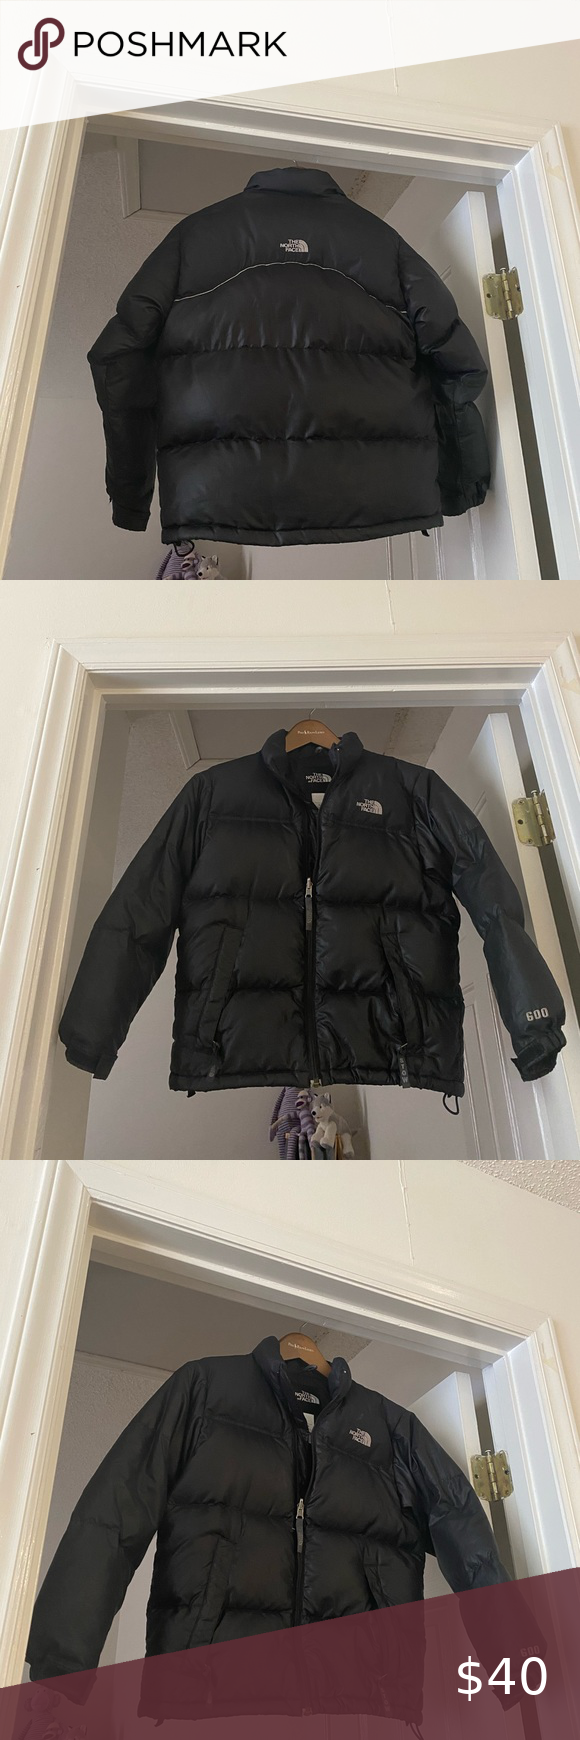 North Face Down Jacket Down Jacket Jackets Black North Face [ 1740 x 580 Pixel ]